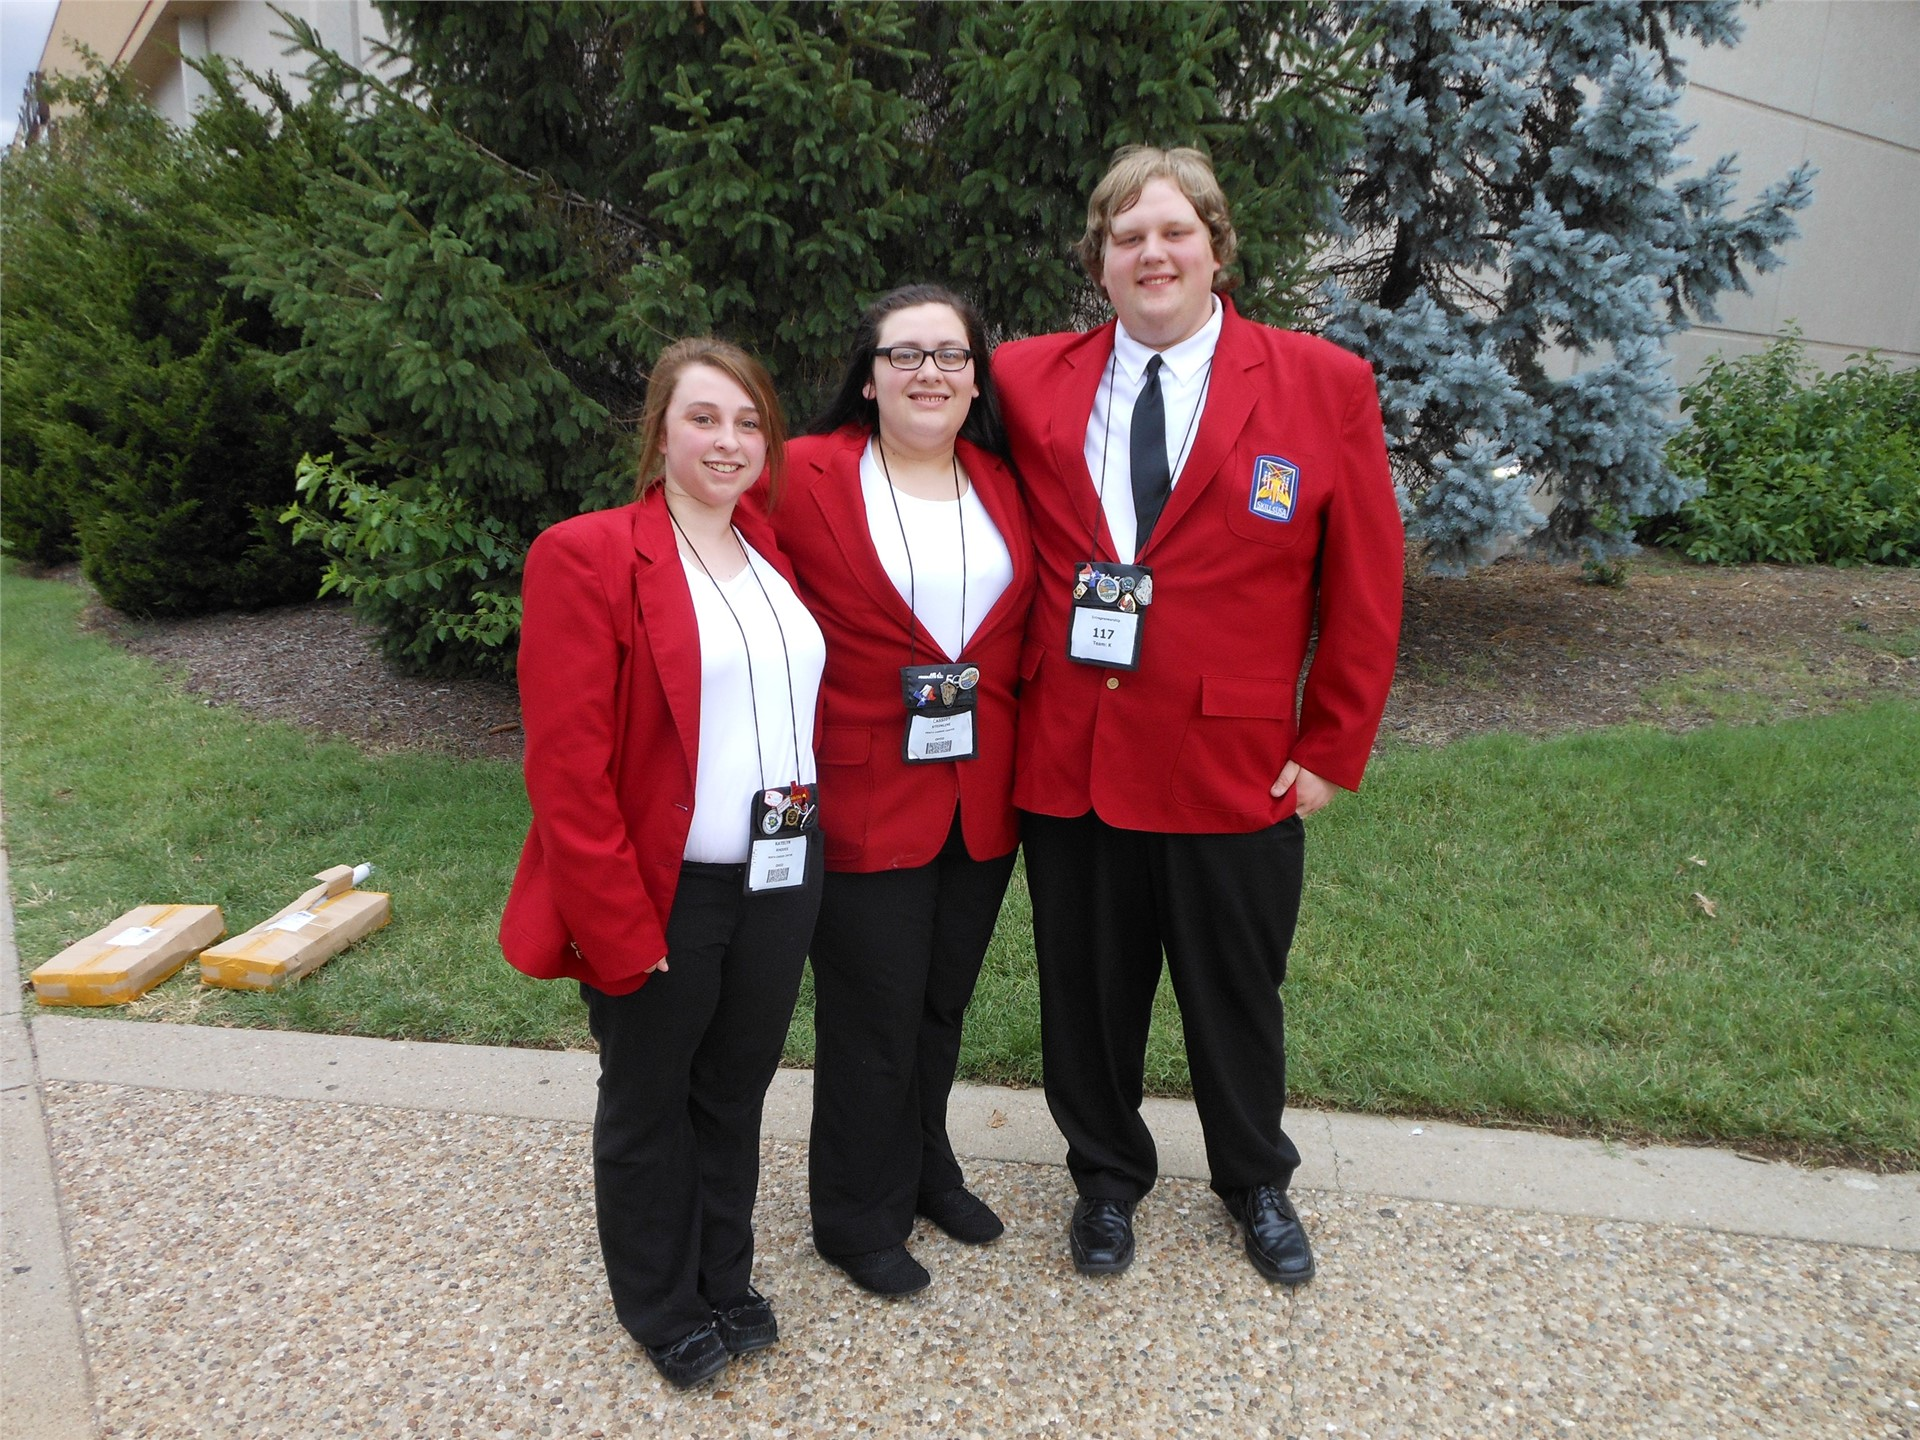 Culinary Arts Entrepreneurship Team - 4th in the Nation